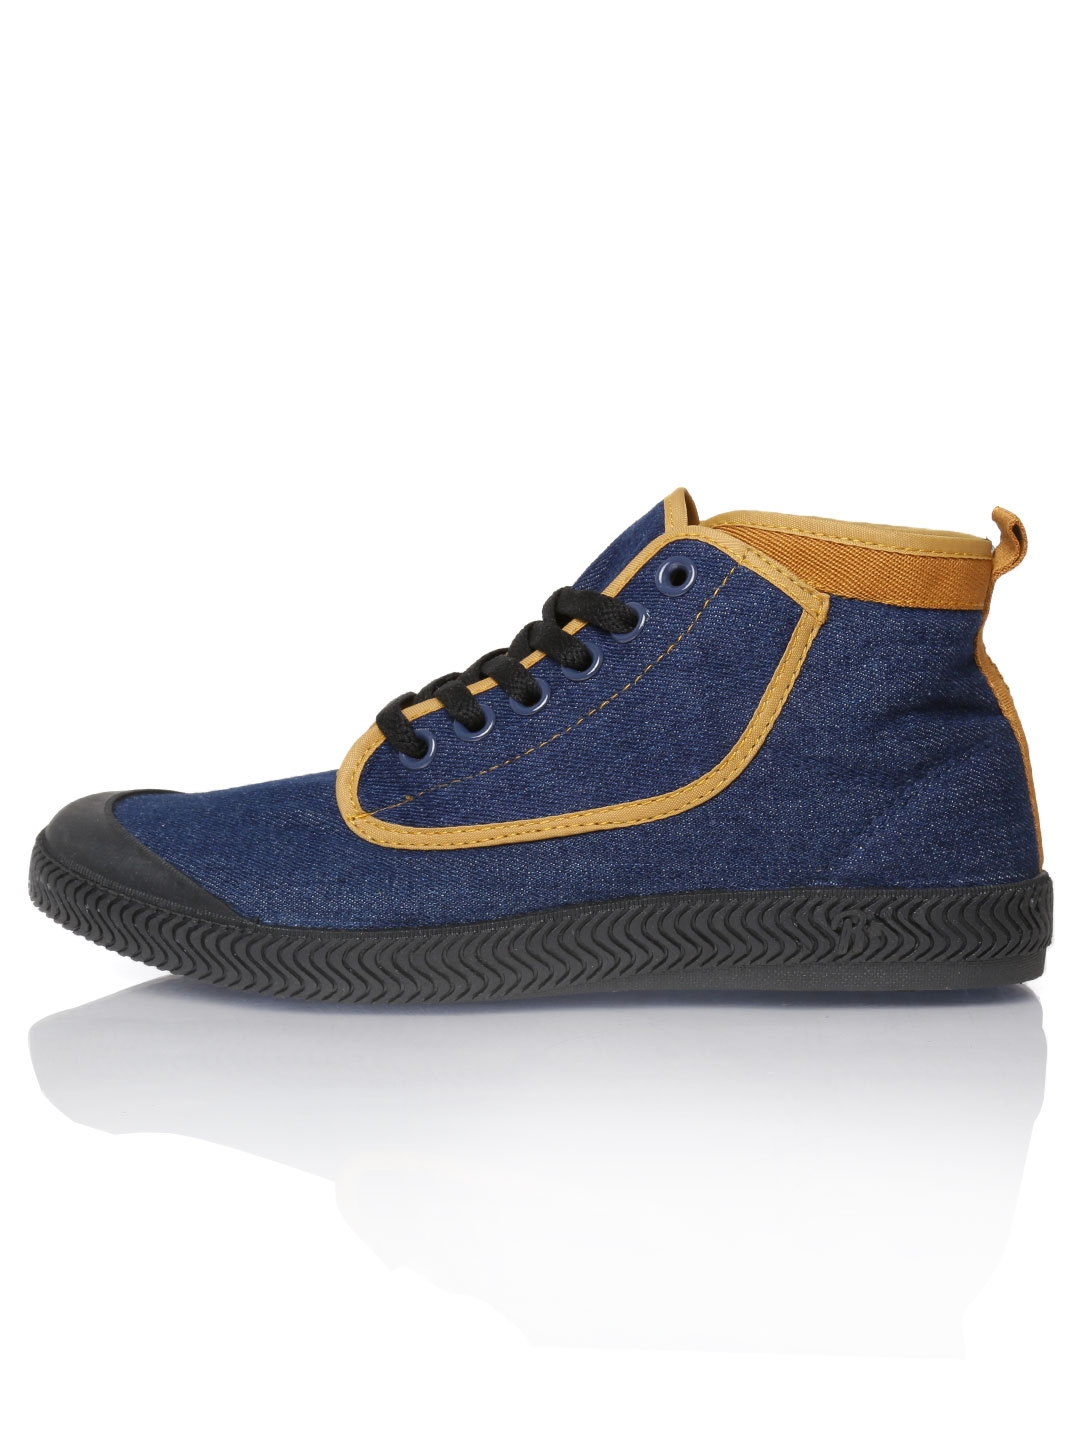 myntra roadster navy casual shoes 652741 buy myntra